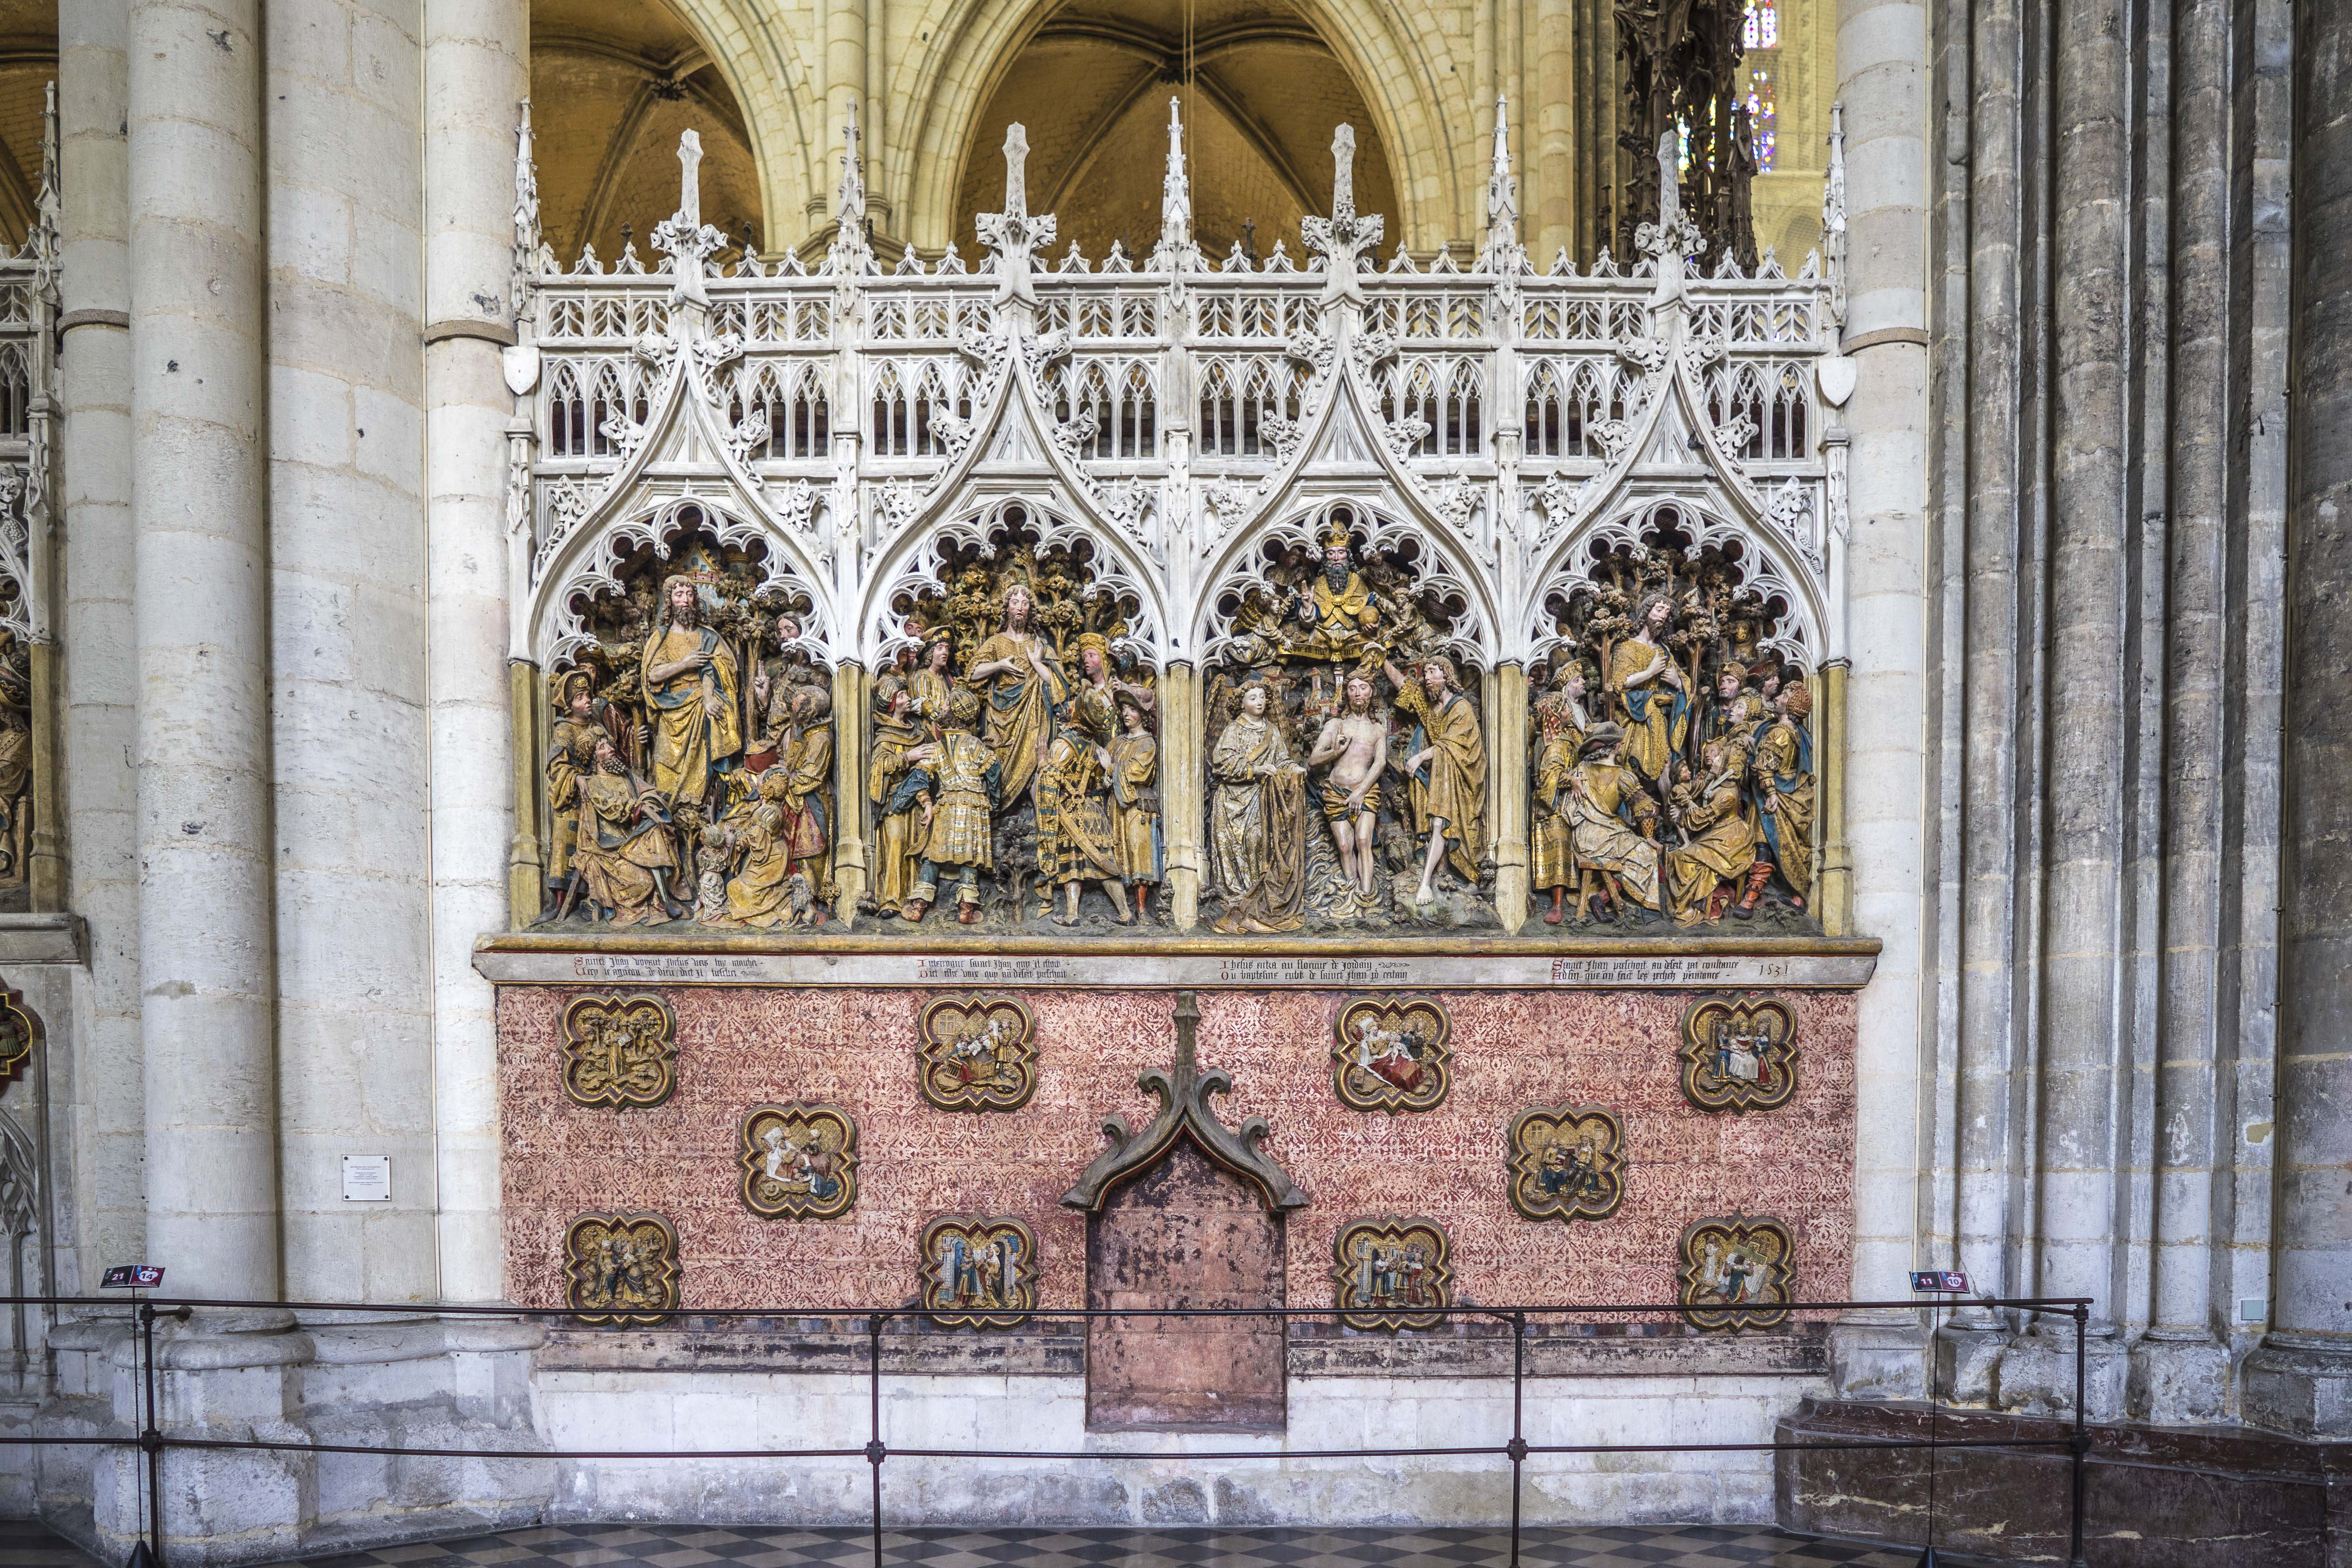 Amiens, France - Chancel Screen, second pane